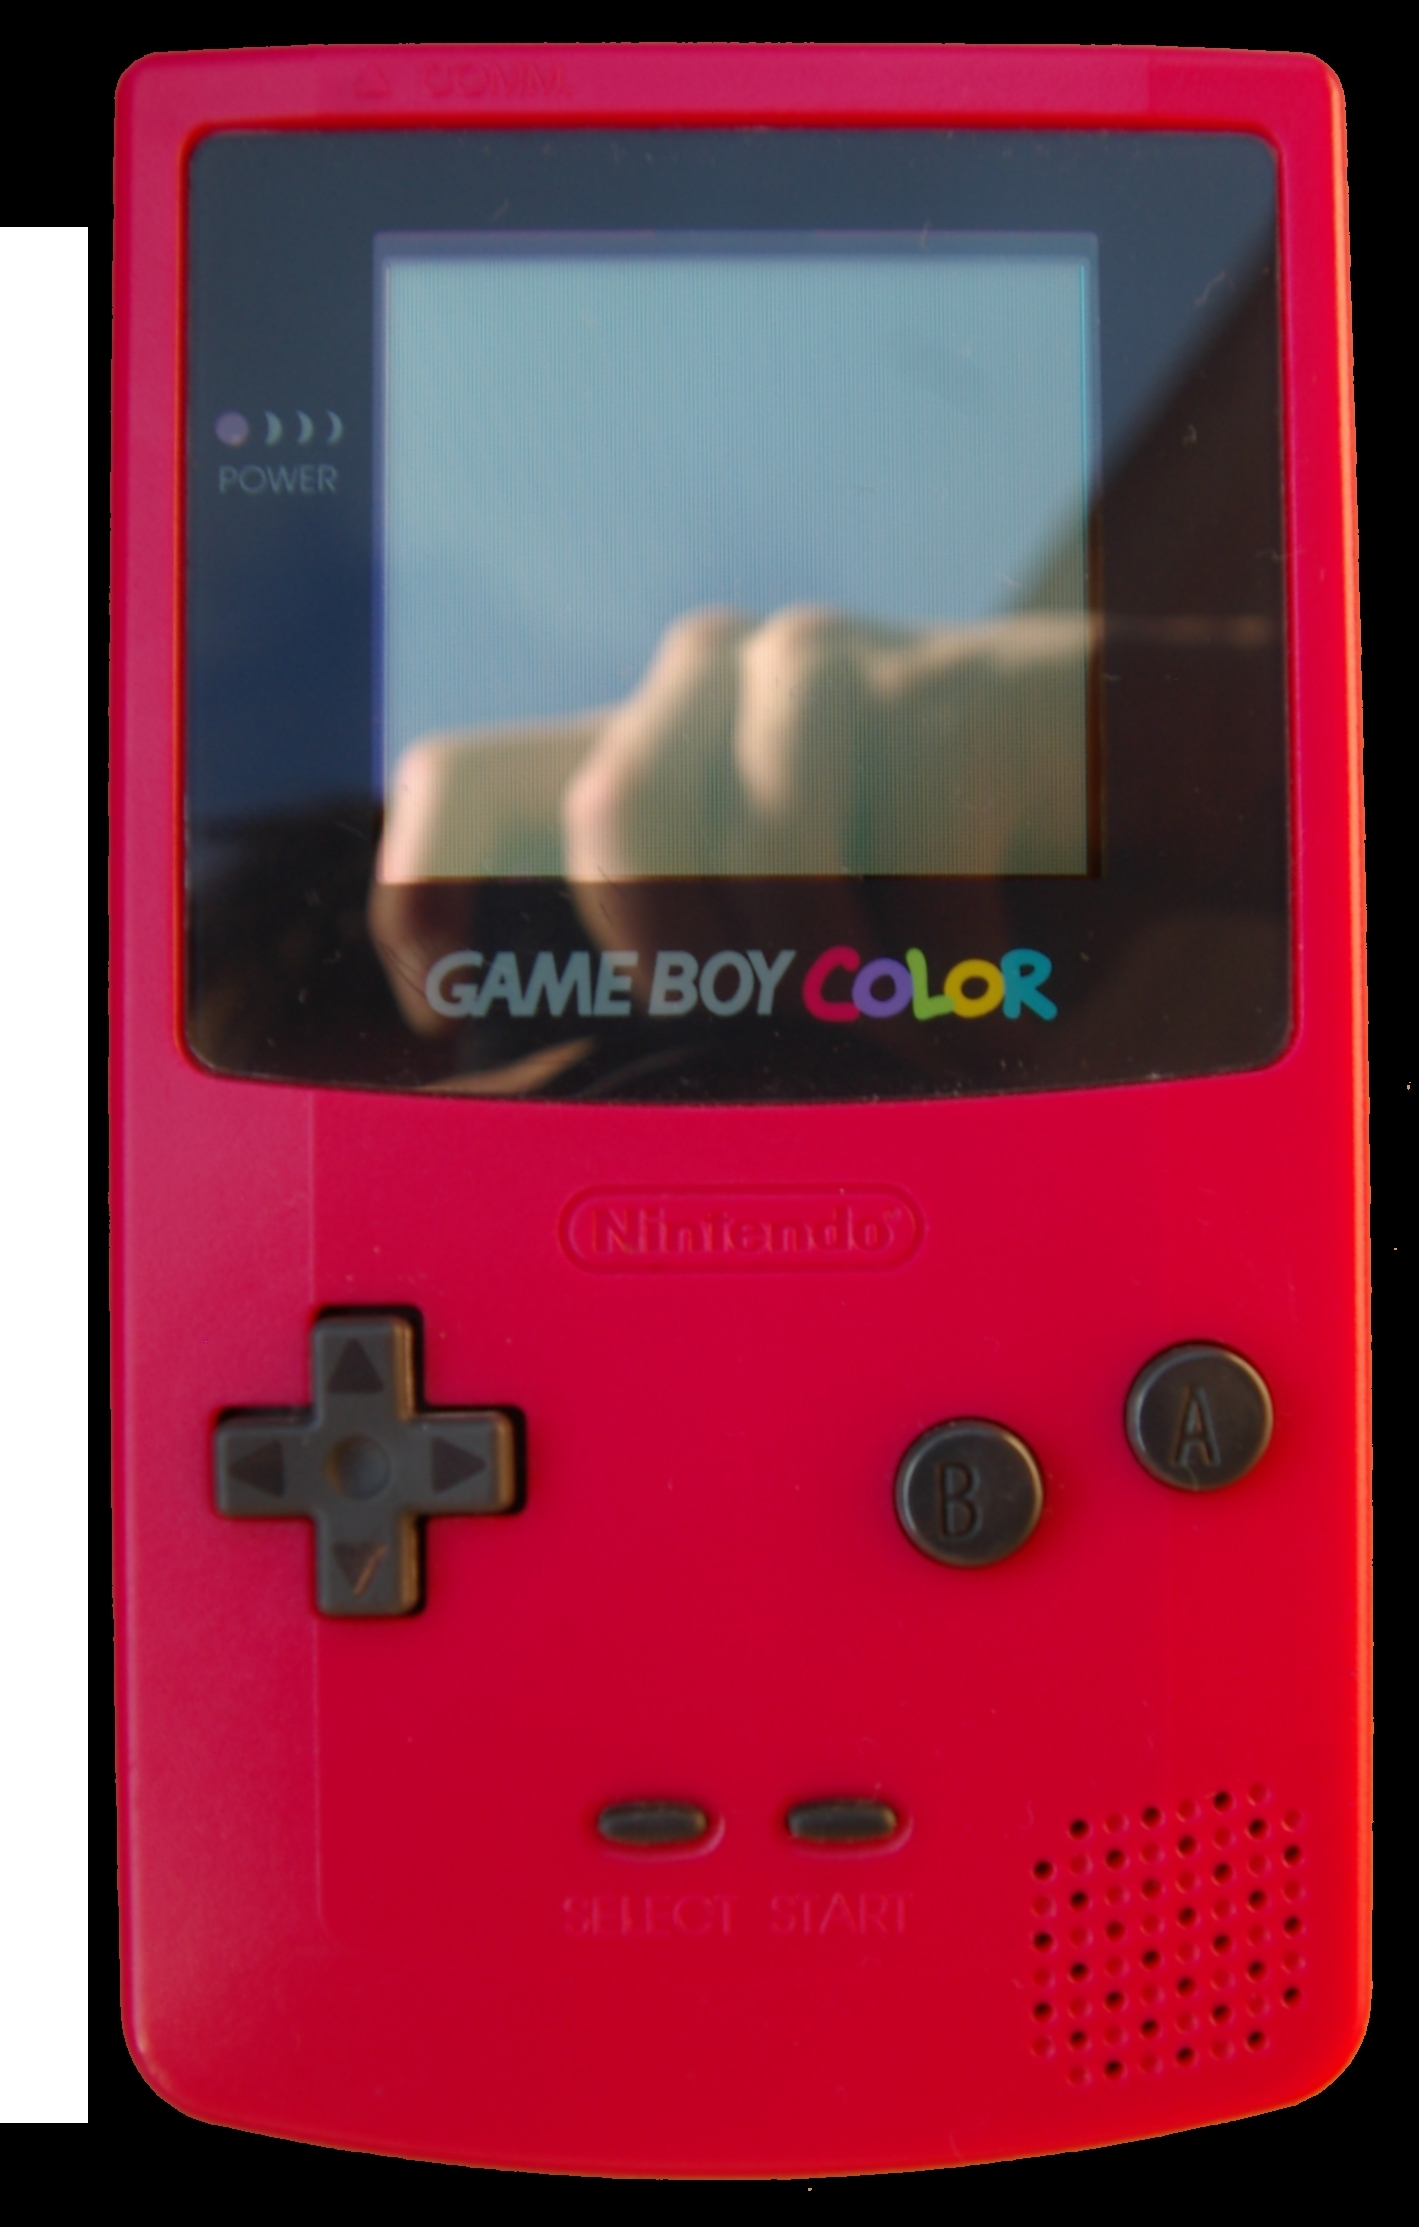 Gameboy color emulators - Cool Rom Gameboy Color Emulator